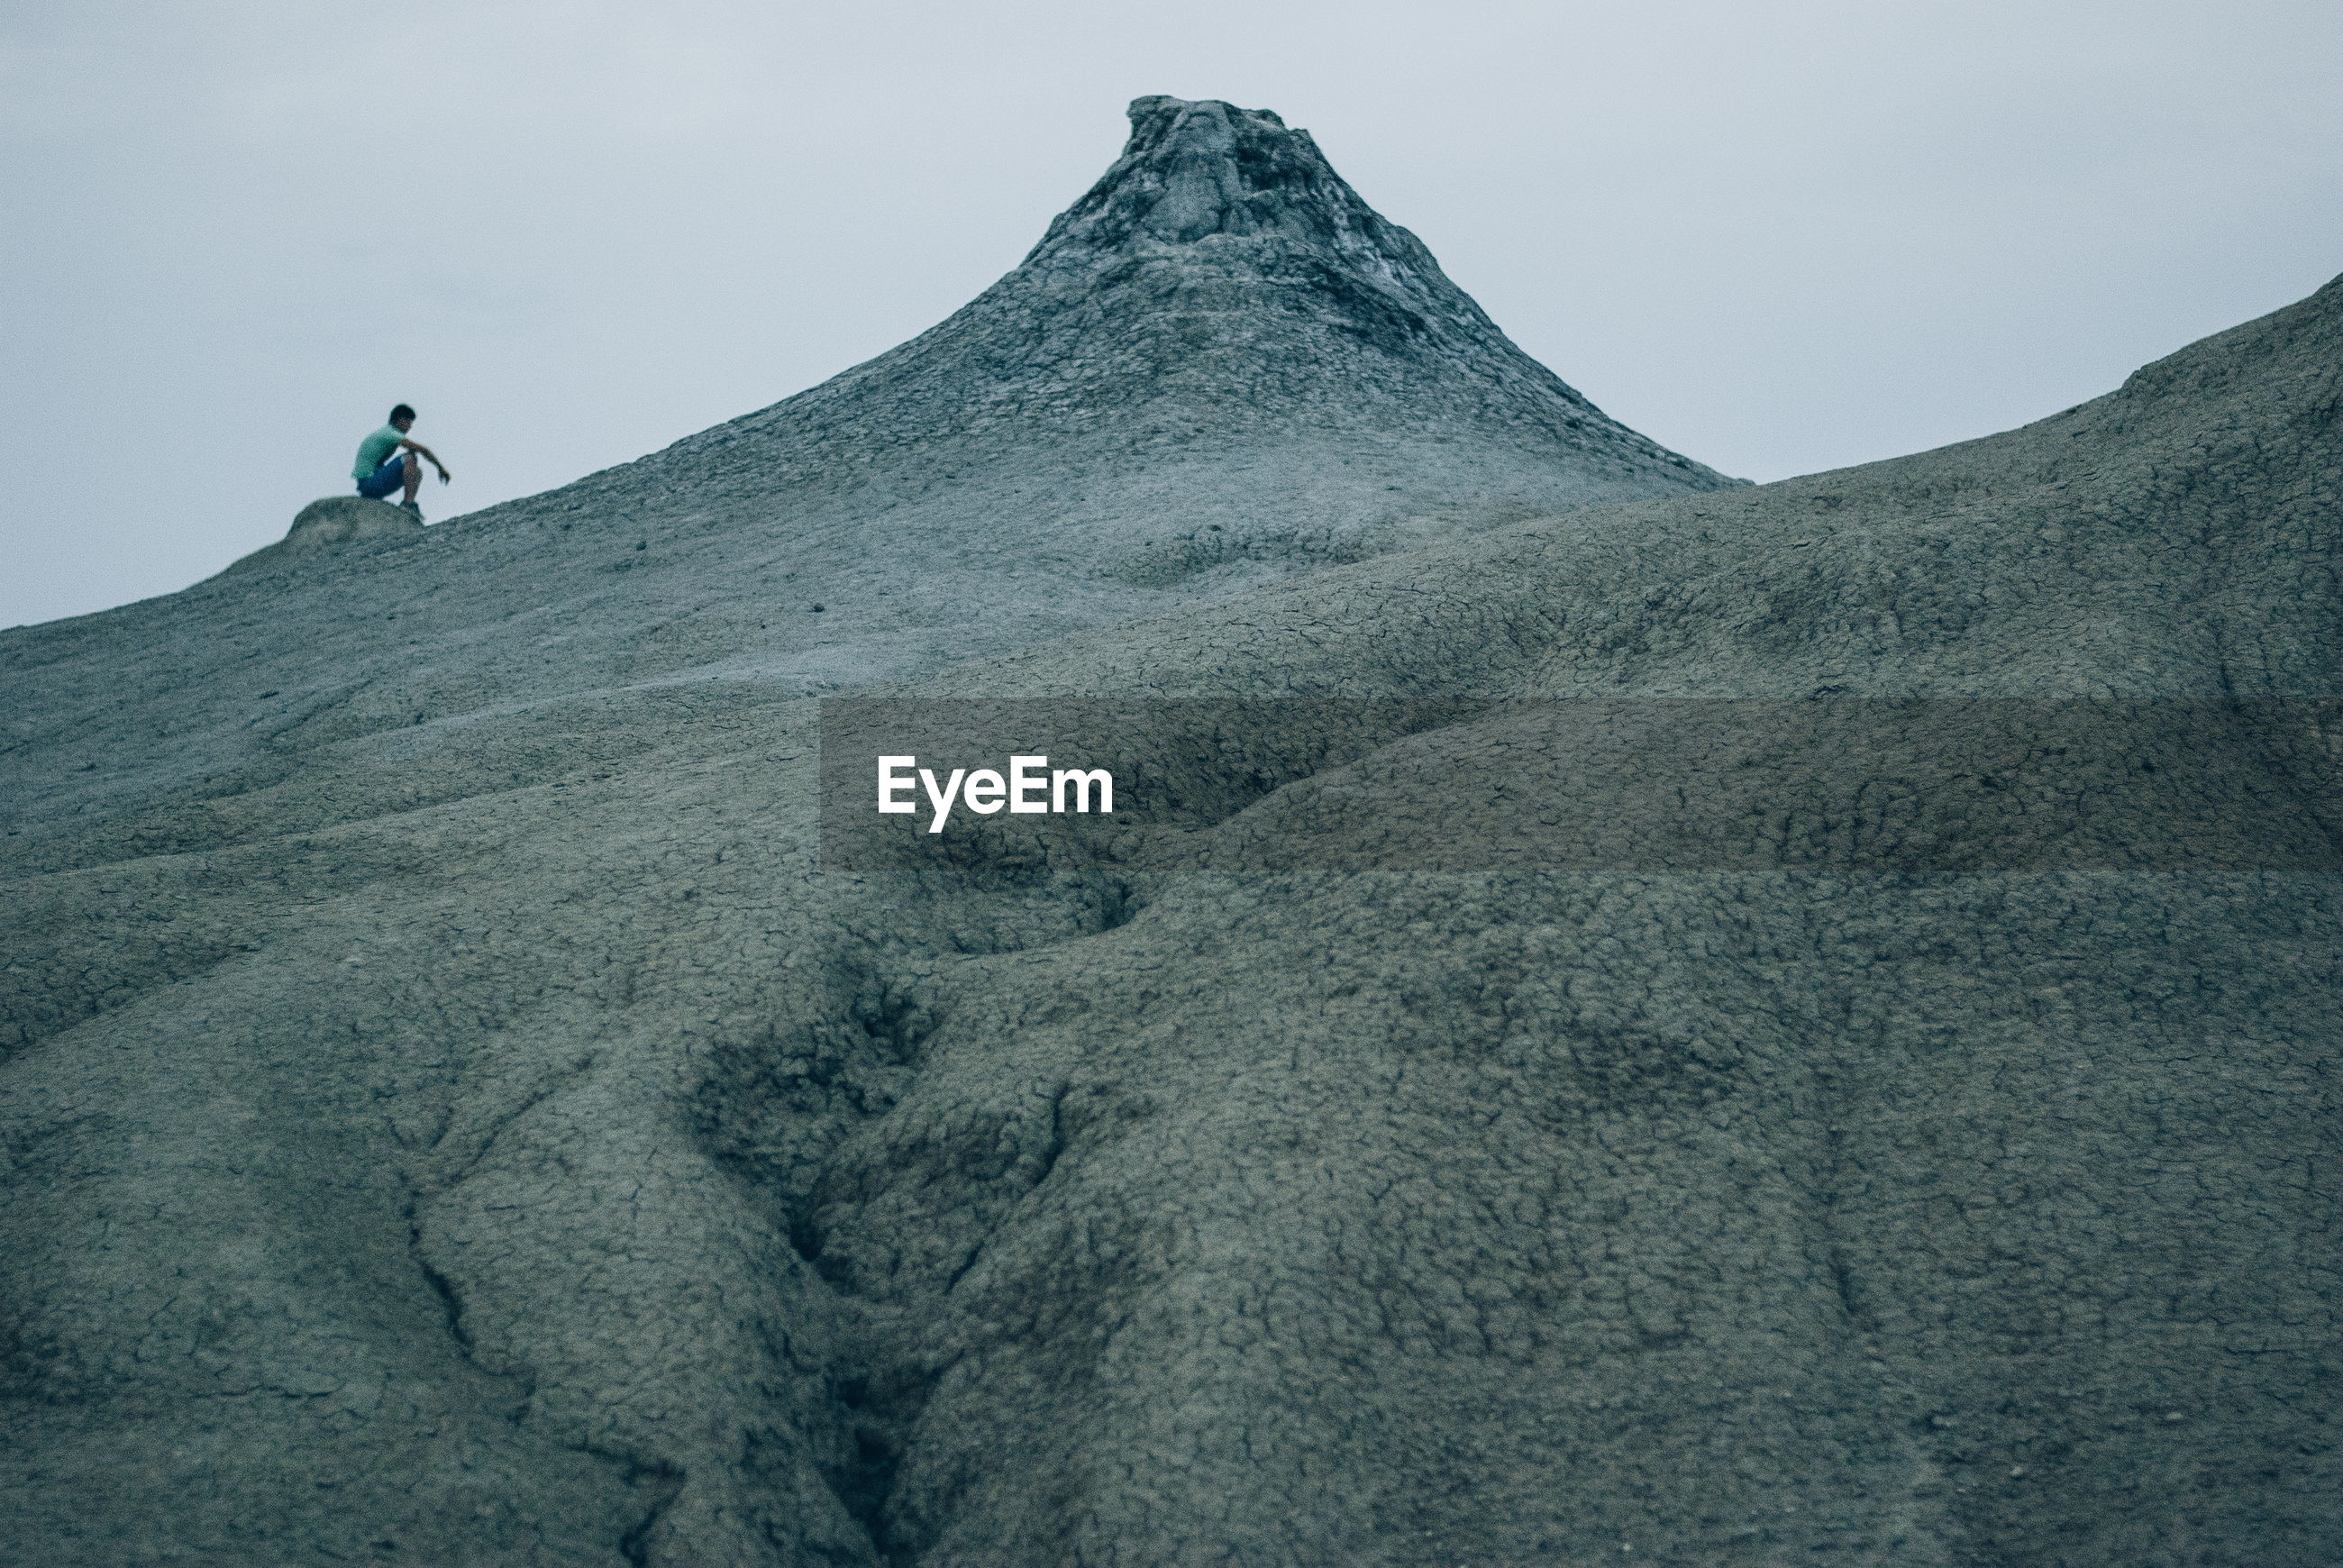 Low angle view of man sitting on mountain against sky